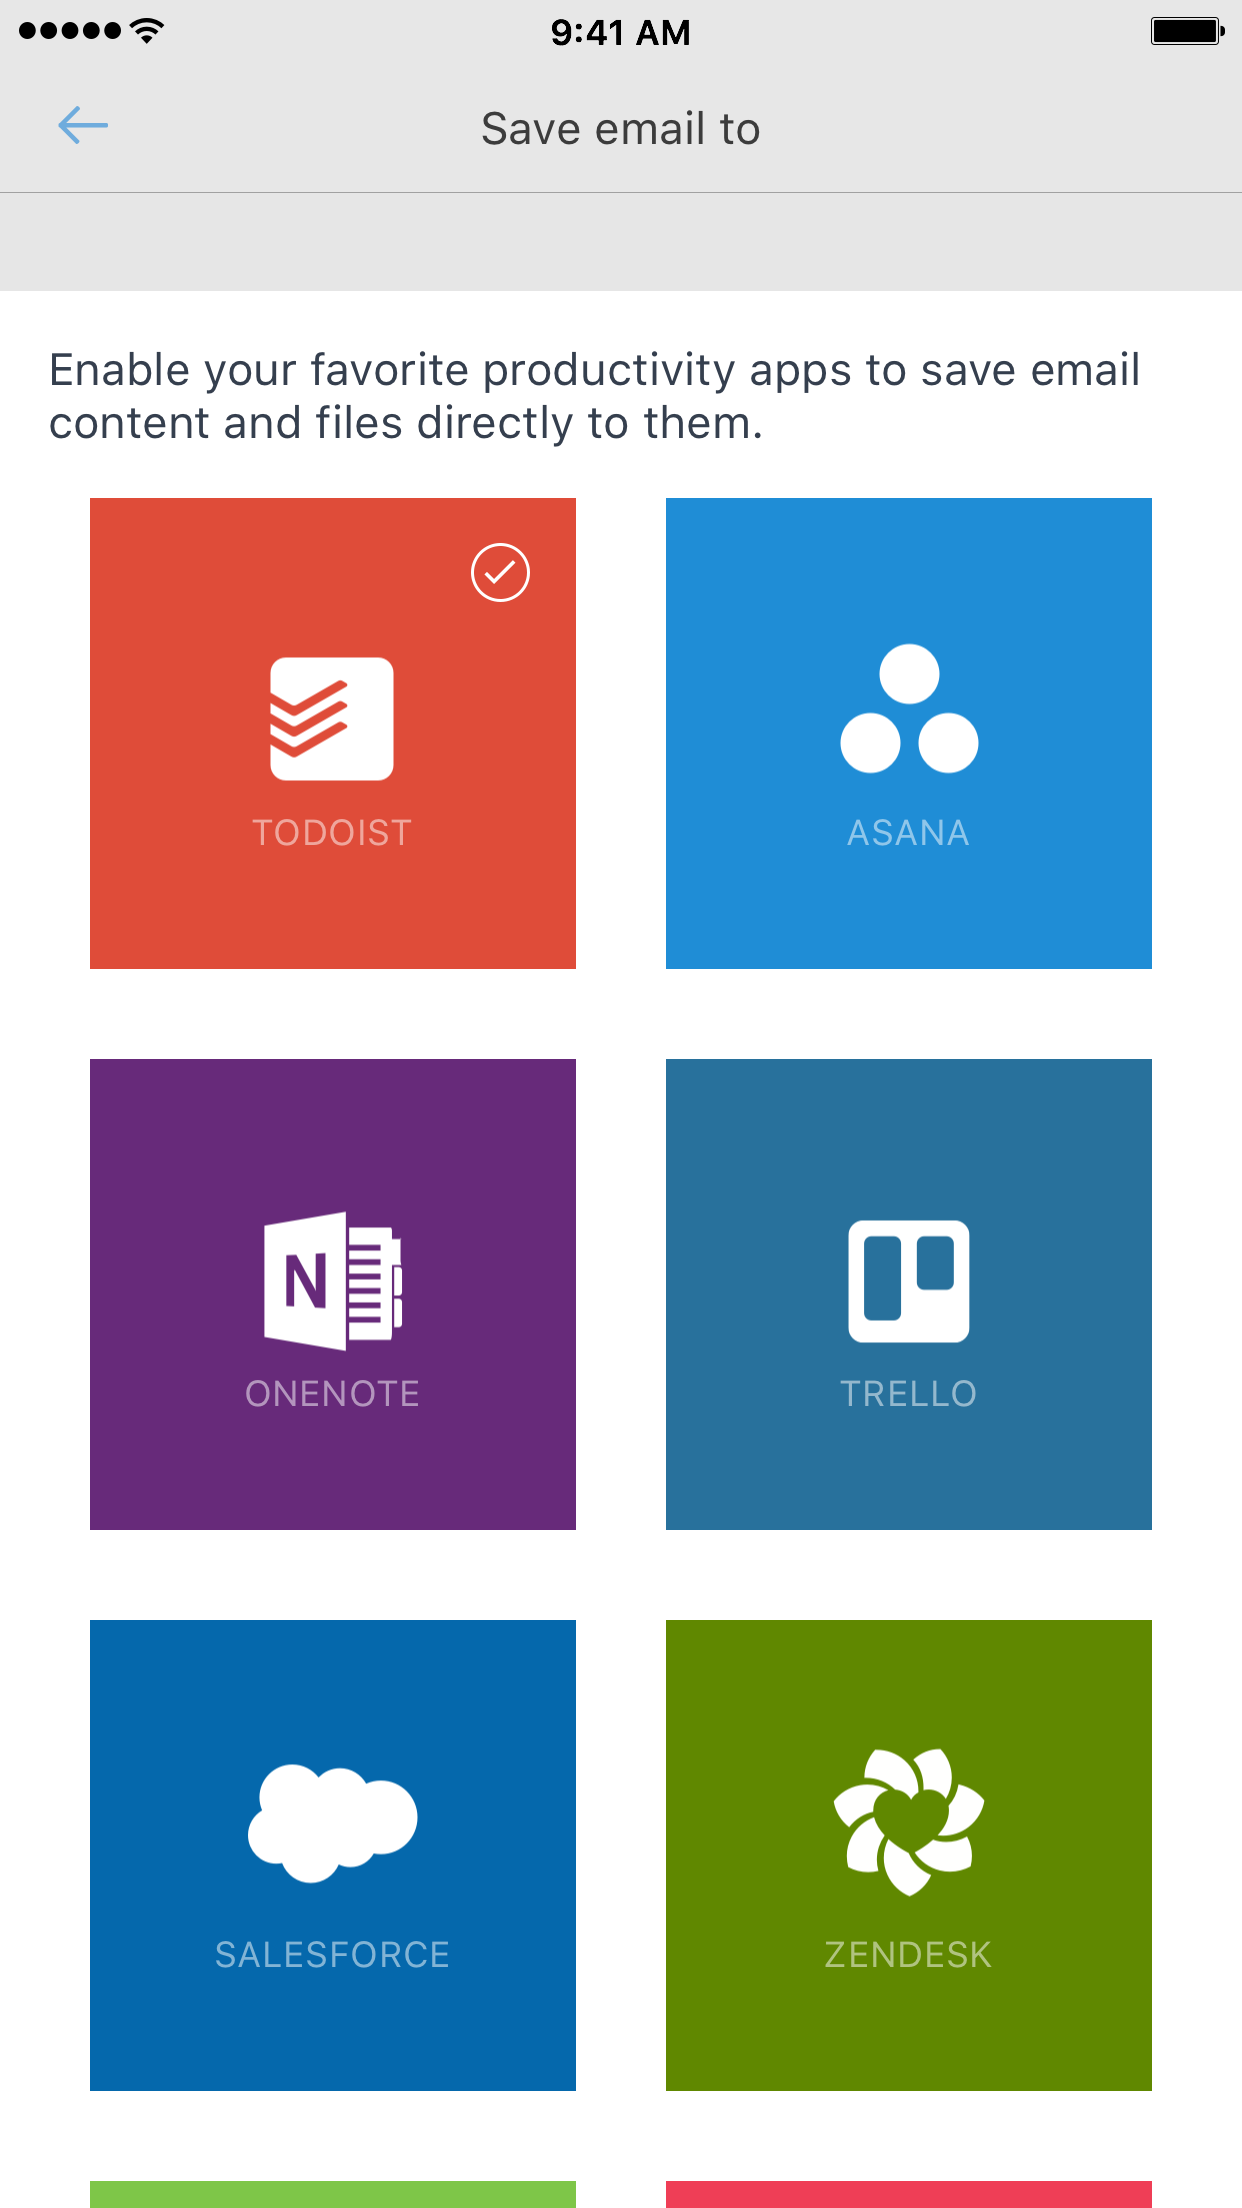 newton-connect-productivity-apps